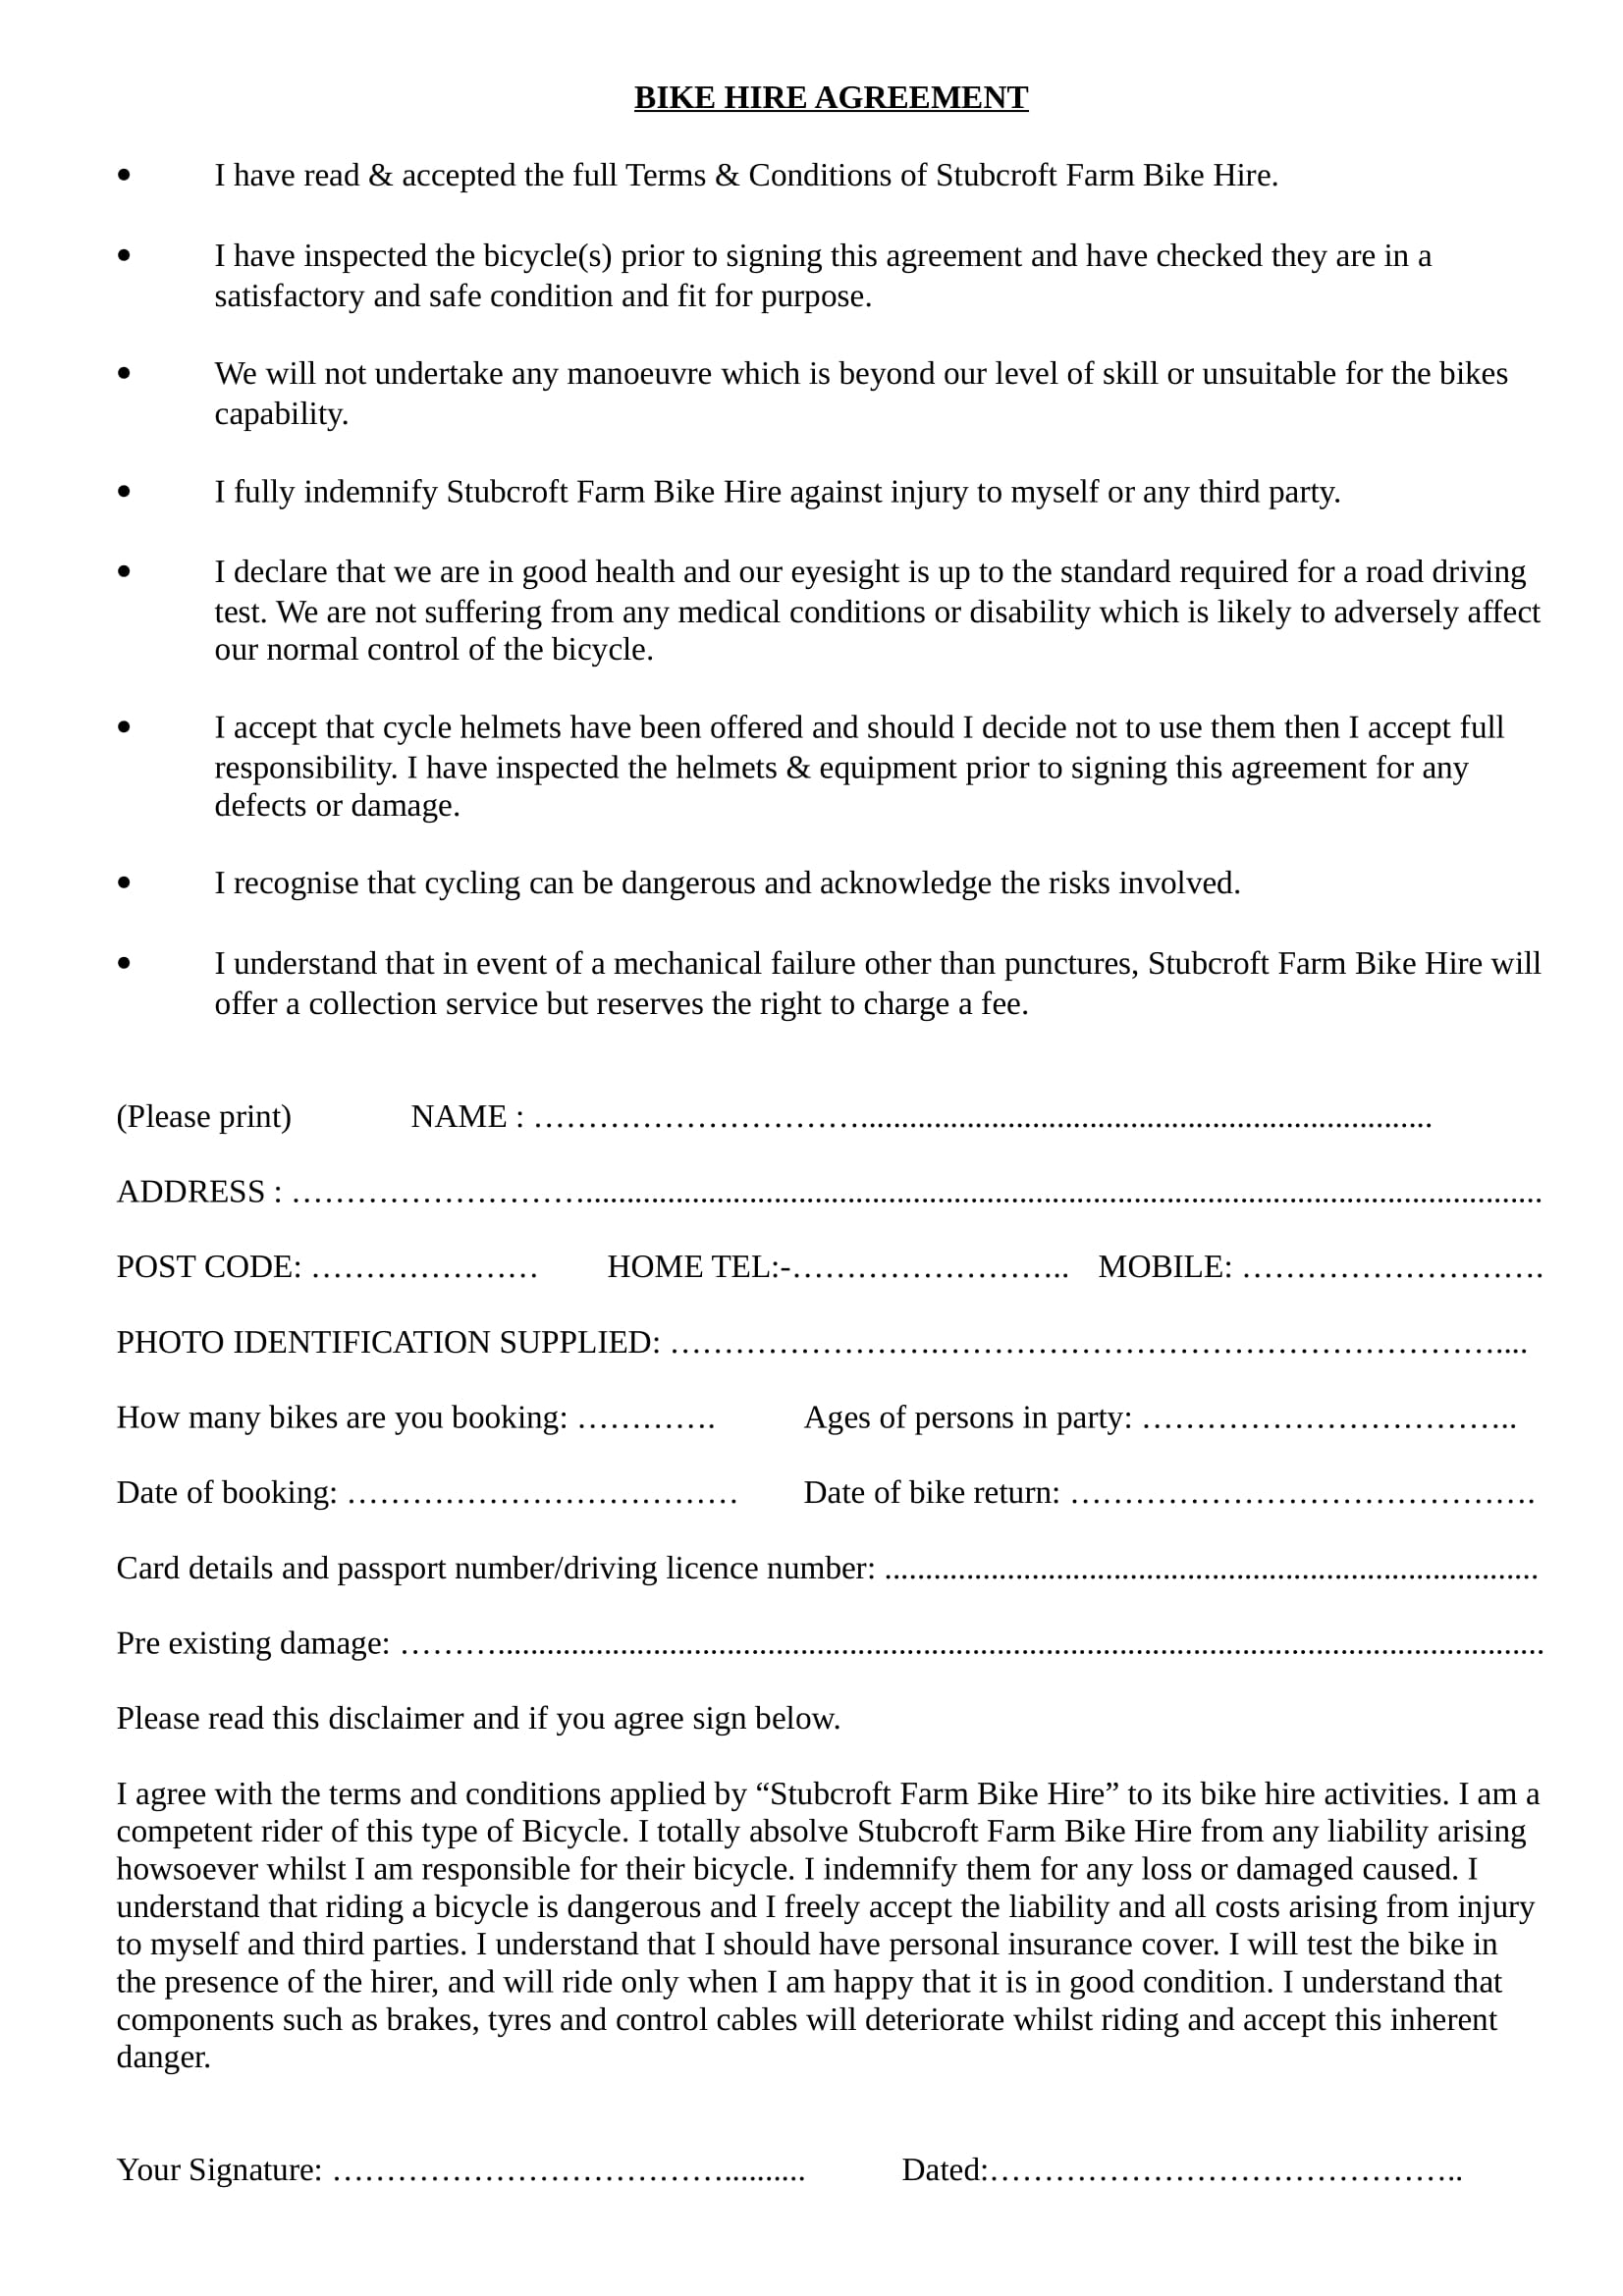 bike hire agreement contract form 1